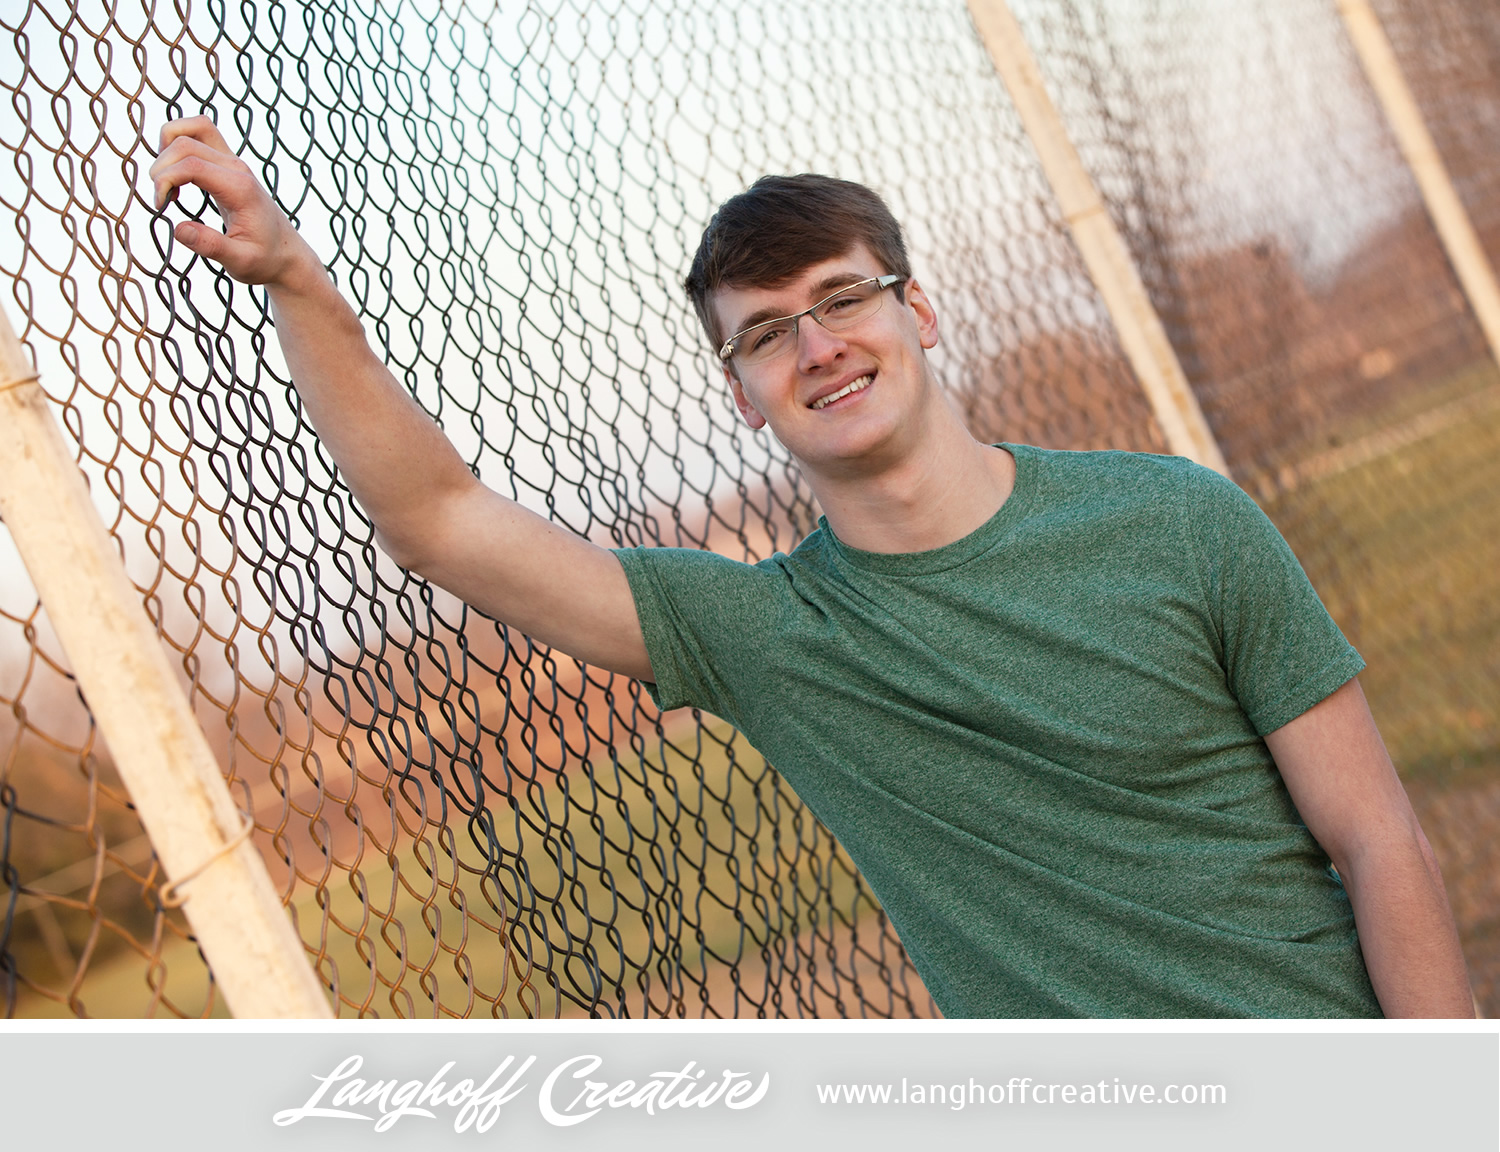 LanghoffCreative-2013RacineSeniorPortrait-Chad08-photo.jpg